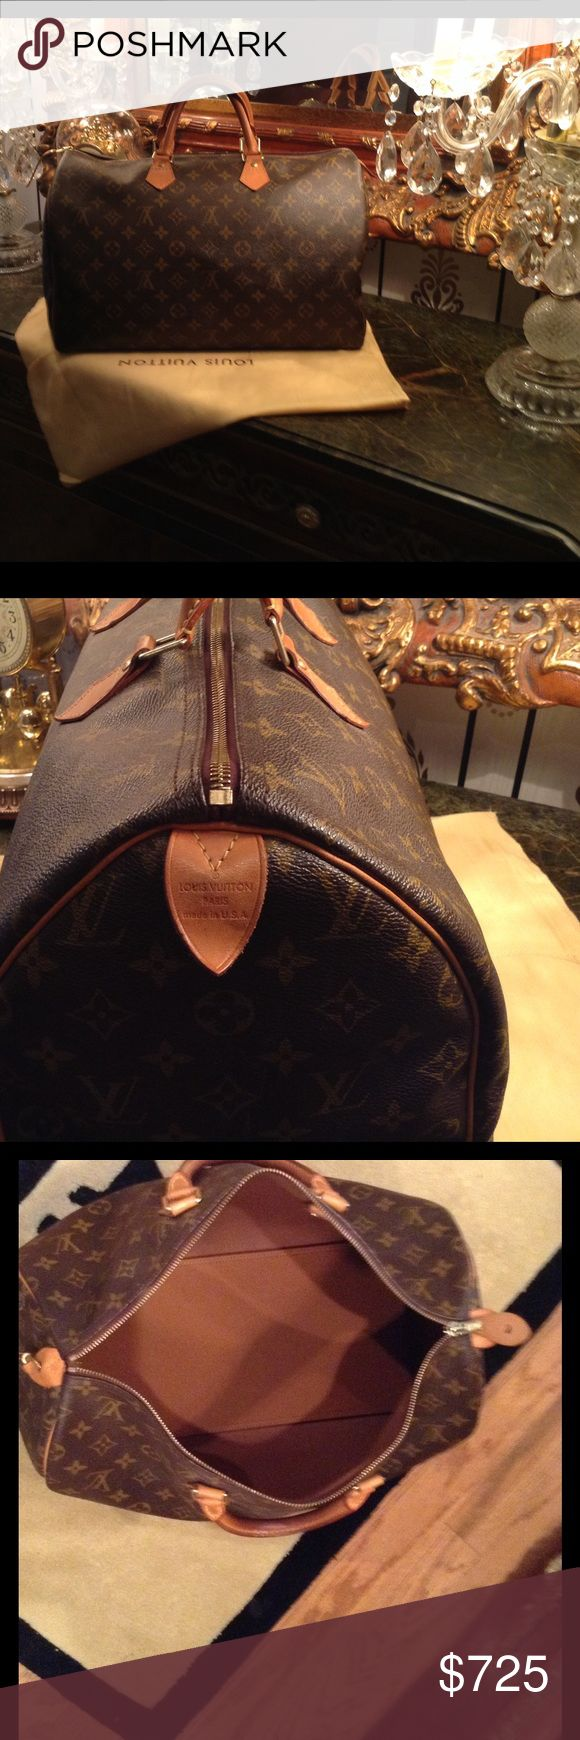 100% Authentic Louis Vuitton Speedy 40 Brown n tan monogram coated canvas Louis Vuitton Speedy 40 from my own pre-loved collection. Brass hardware, tan vachetta leather accents, dual rolled handles, brown canvas lining, single pocket at interior wall with zipped closure at top. Patina leather. Date code reads SD2151. Shop authentic designer handbag by Louis Vuitton. Non Smoking home.  Excellent pre-loved condition. No tears, stains, smells. Louis Vuitton Bags